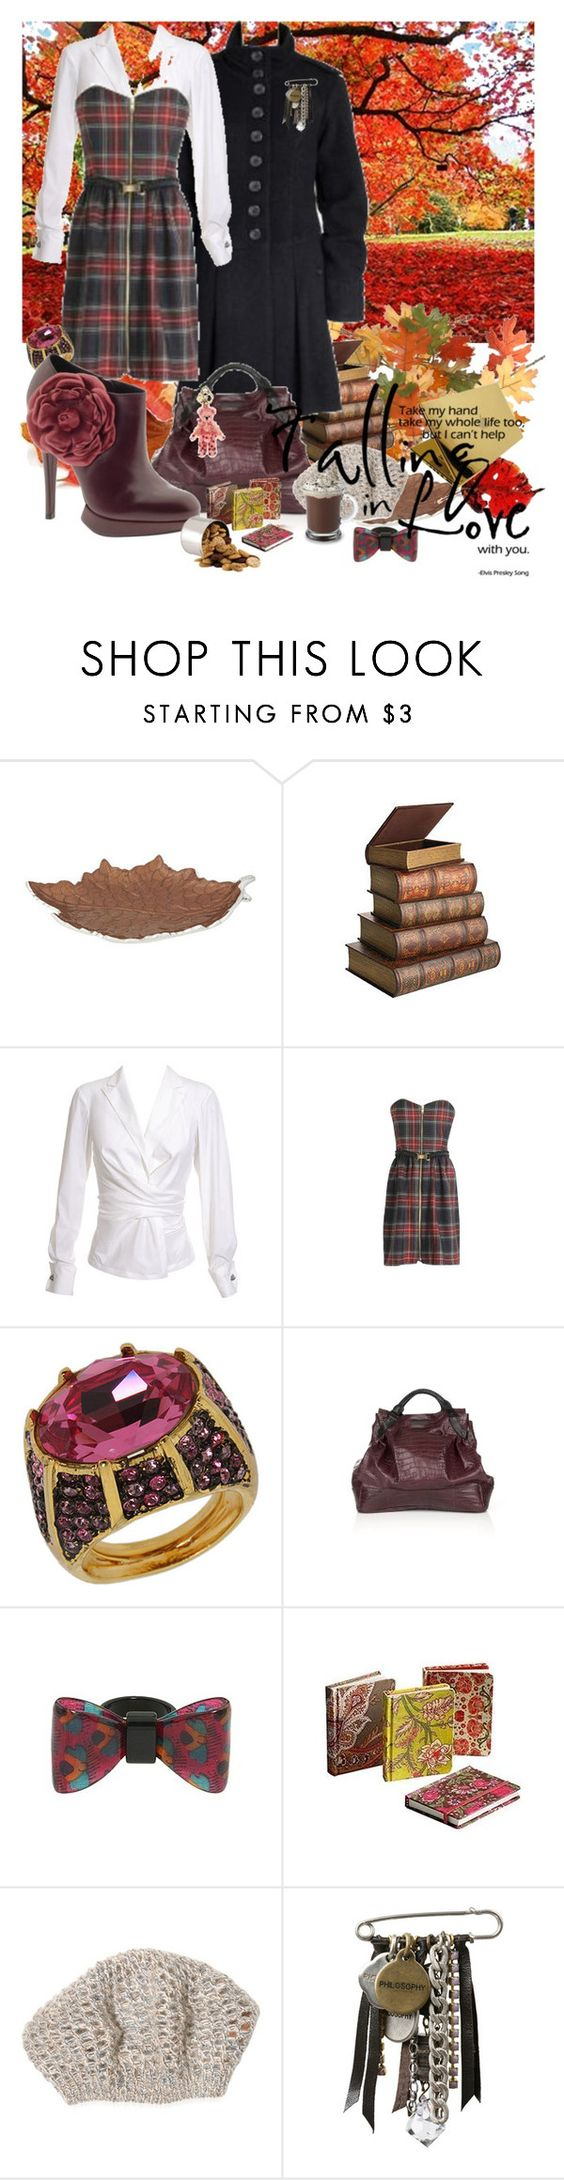 """Walk in the Central Park"" by pattycontrerasblanch ❤ liked on Polyvore featuring Julia Knight, Pier 1 Imports, Kensie, Donna Karan, Corey Lynn Calter, Kenneth Jay Lane, Burberry, Marc by Marc Jacobs, Kelsi Dagger Brooklyn and Missoni"